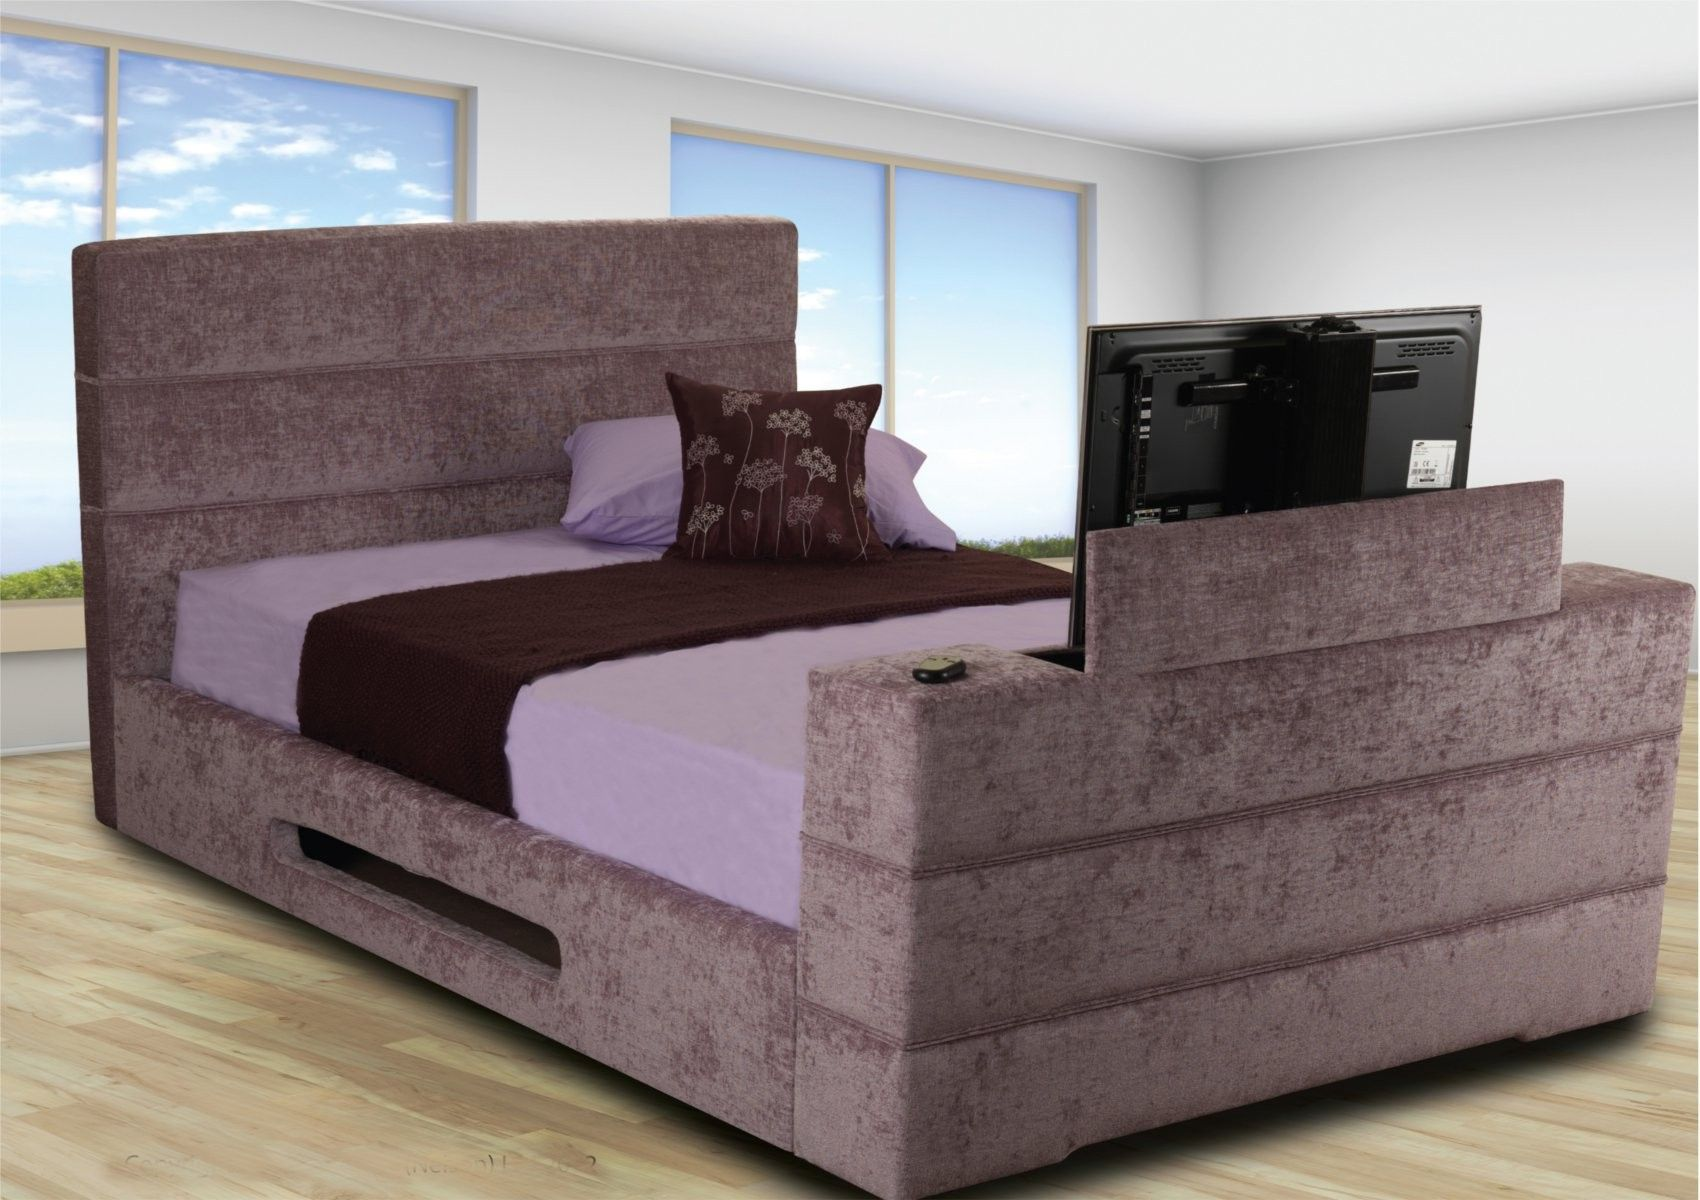 King Size Tv Bed Image Of Cool Beds With Built In Tv Bedroom Design Inspirations